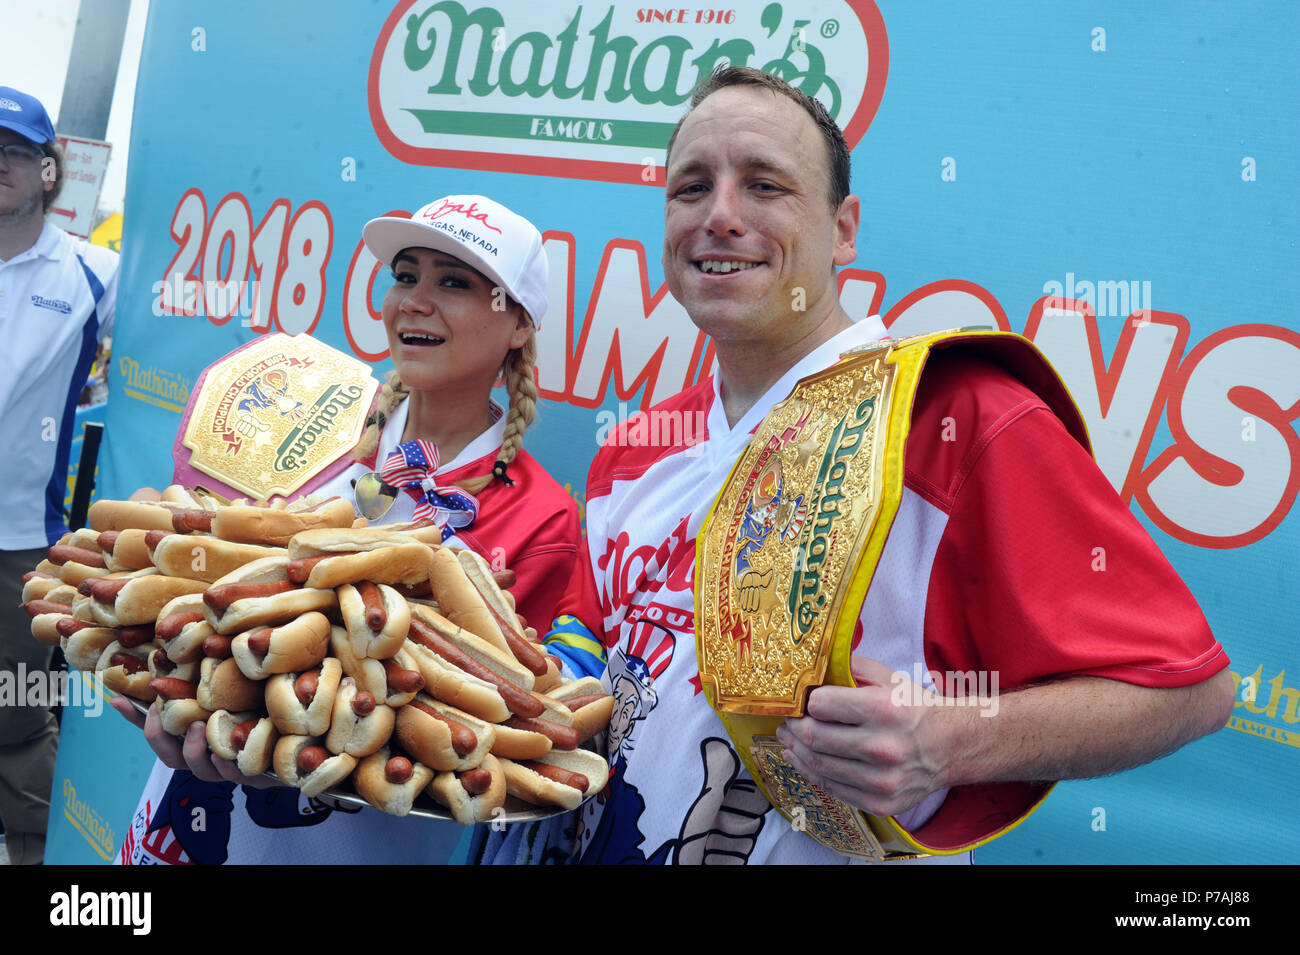 New York Ny July 04 Competitive Eaters Joey Chestnut